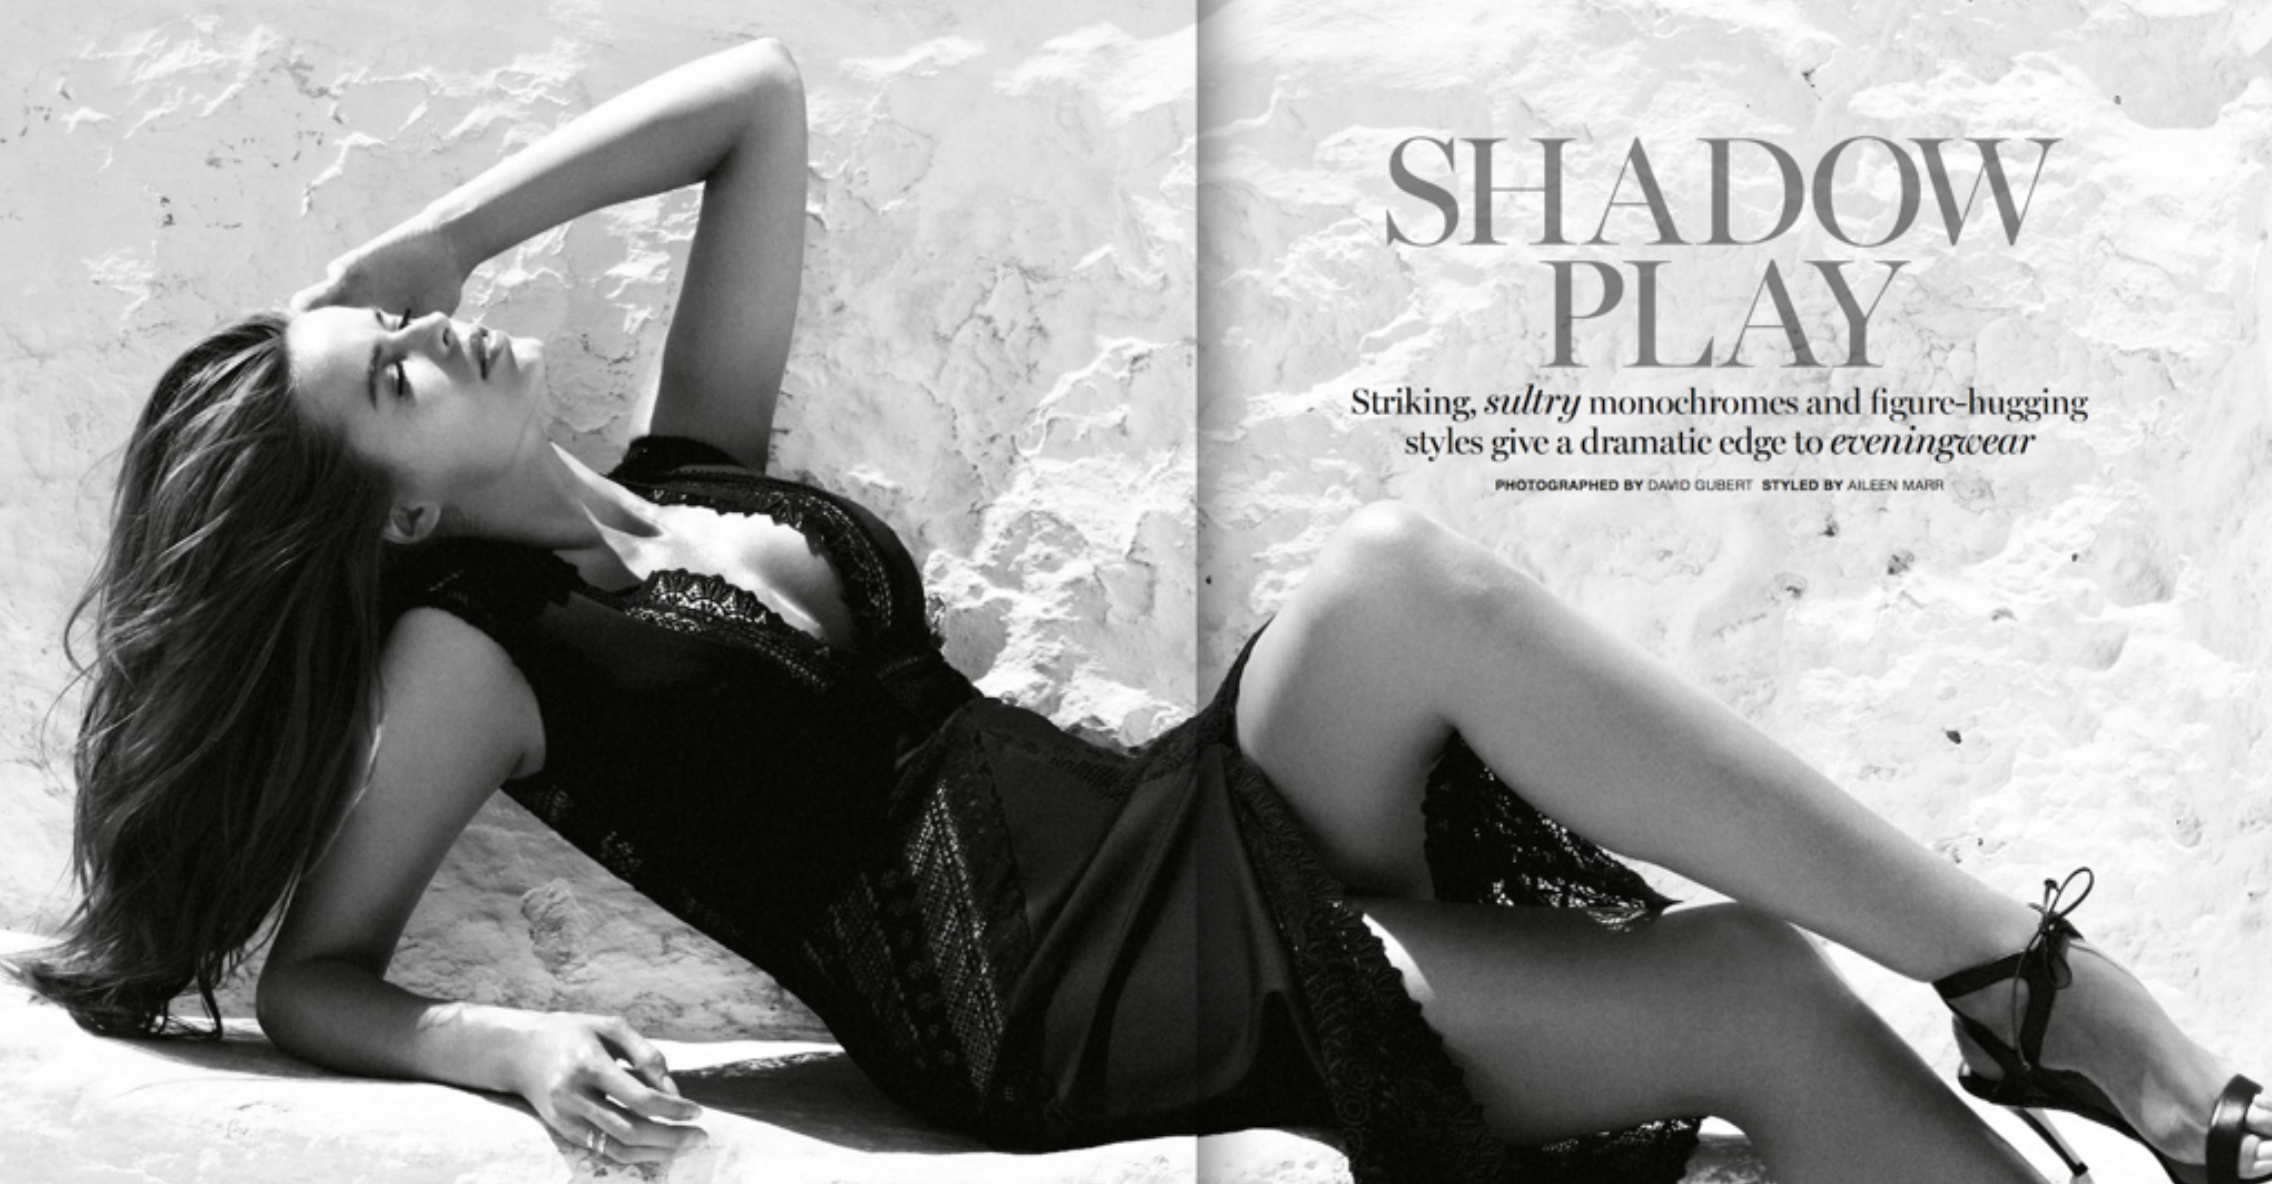 MARIE Claire MAgazine : Robyn lawley ; styled by Aileen marr